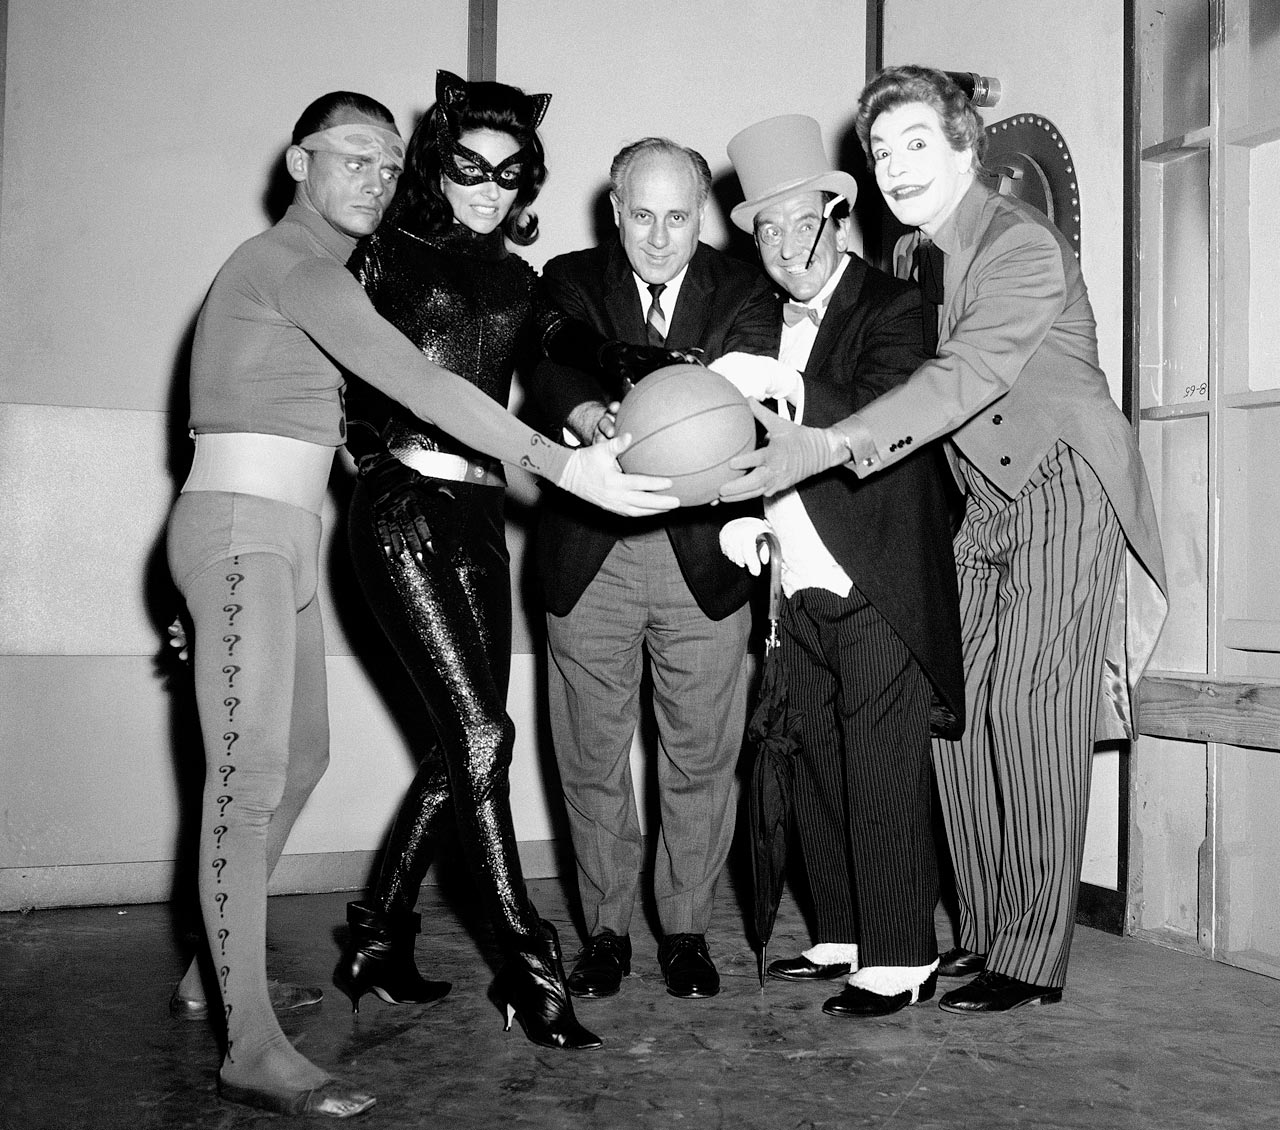 with Frank Gorshin (The Riddler), Lee Meriwether (Catwoman), Burgess Meredith (The Penguin) and Cesar Romero (The Joker).